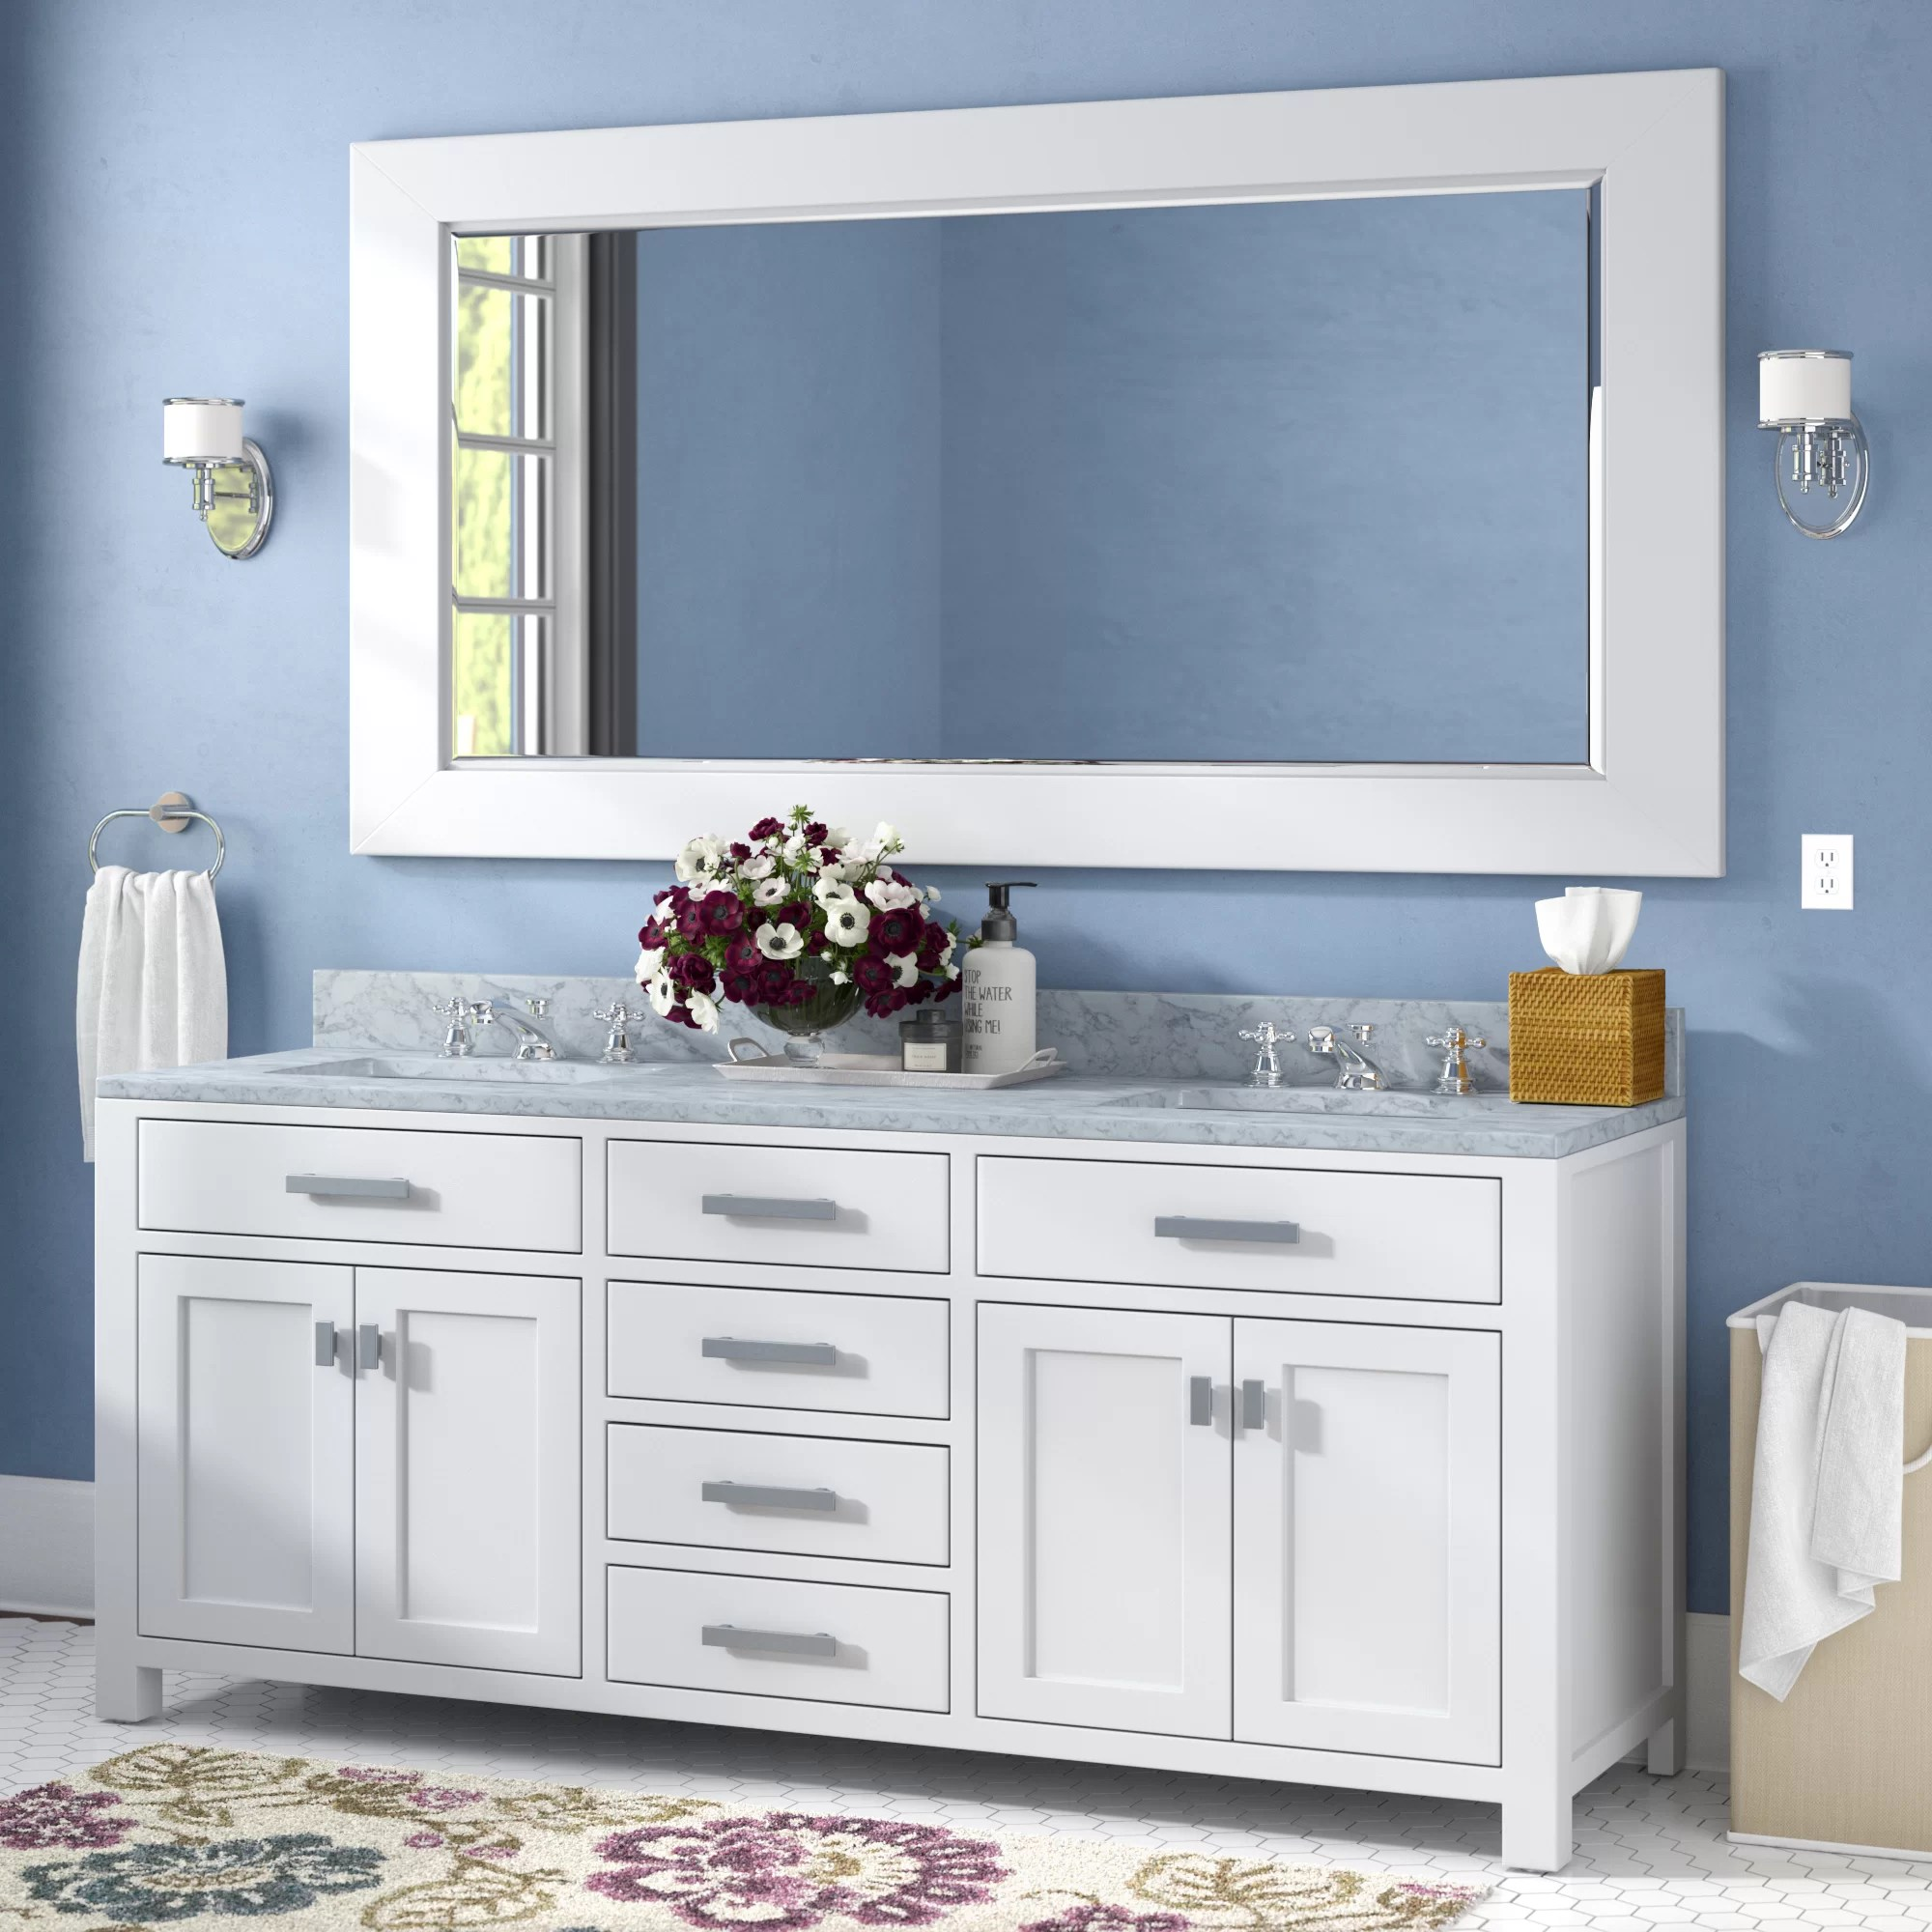 Bathroom Vanity 72 Double Sink Raven 72